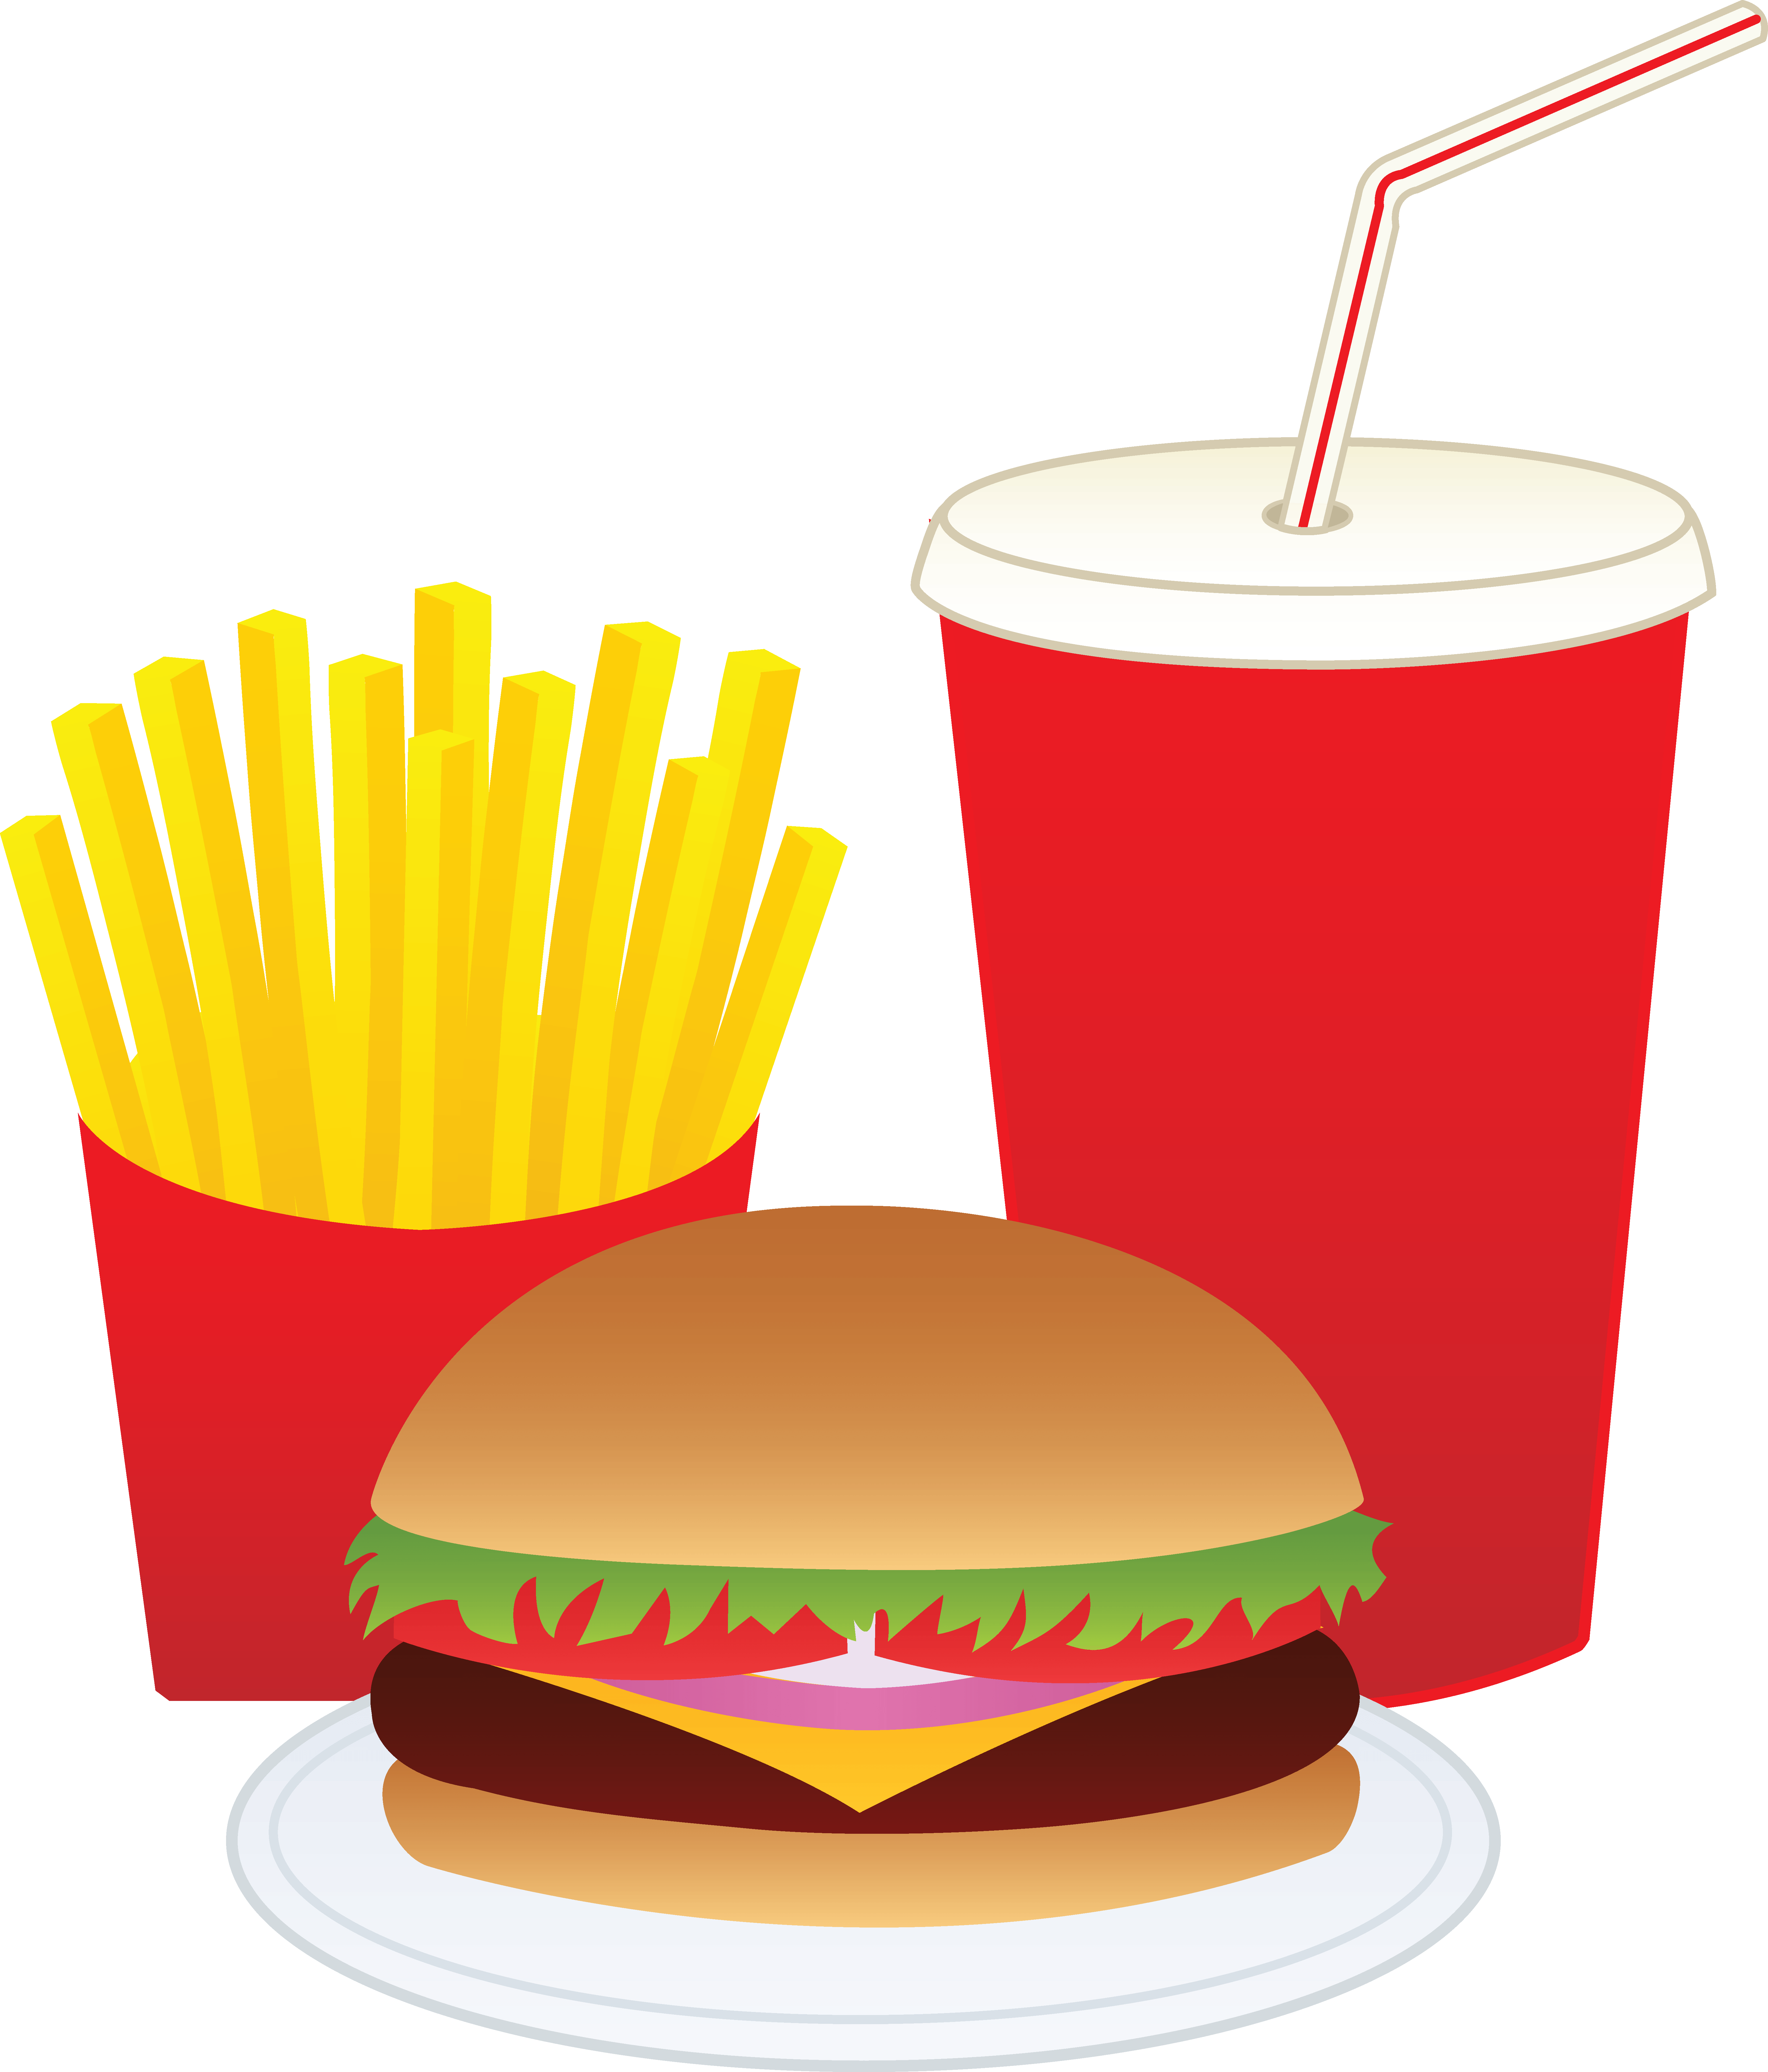 Hamburger clipart grill clipart. Meal cliparts zone and